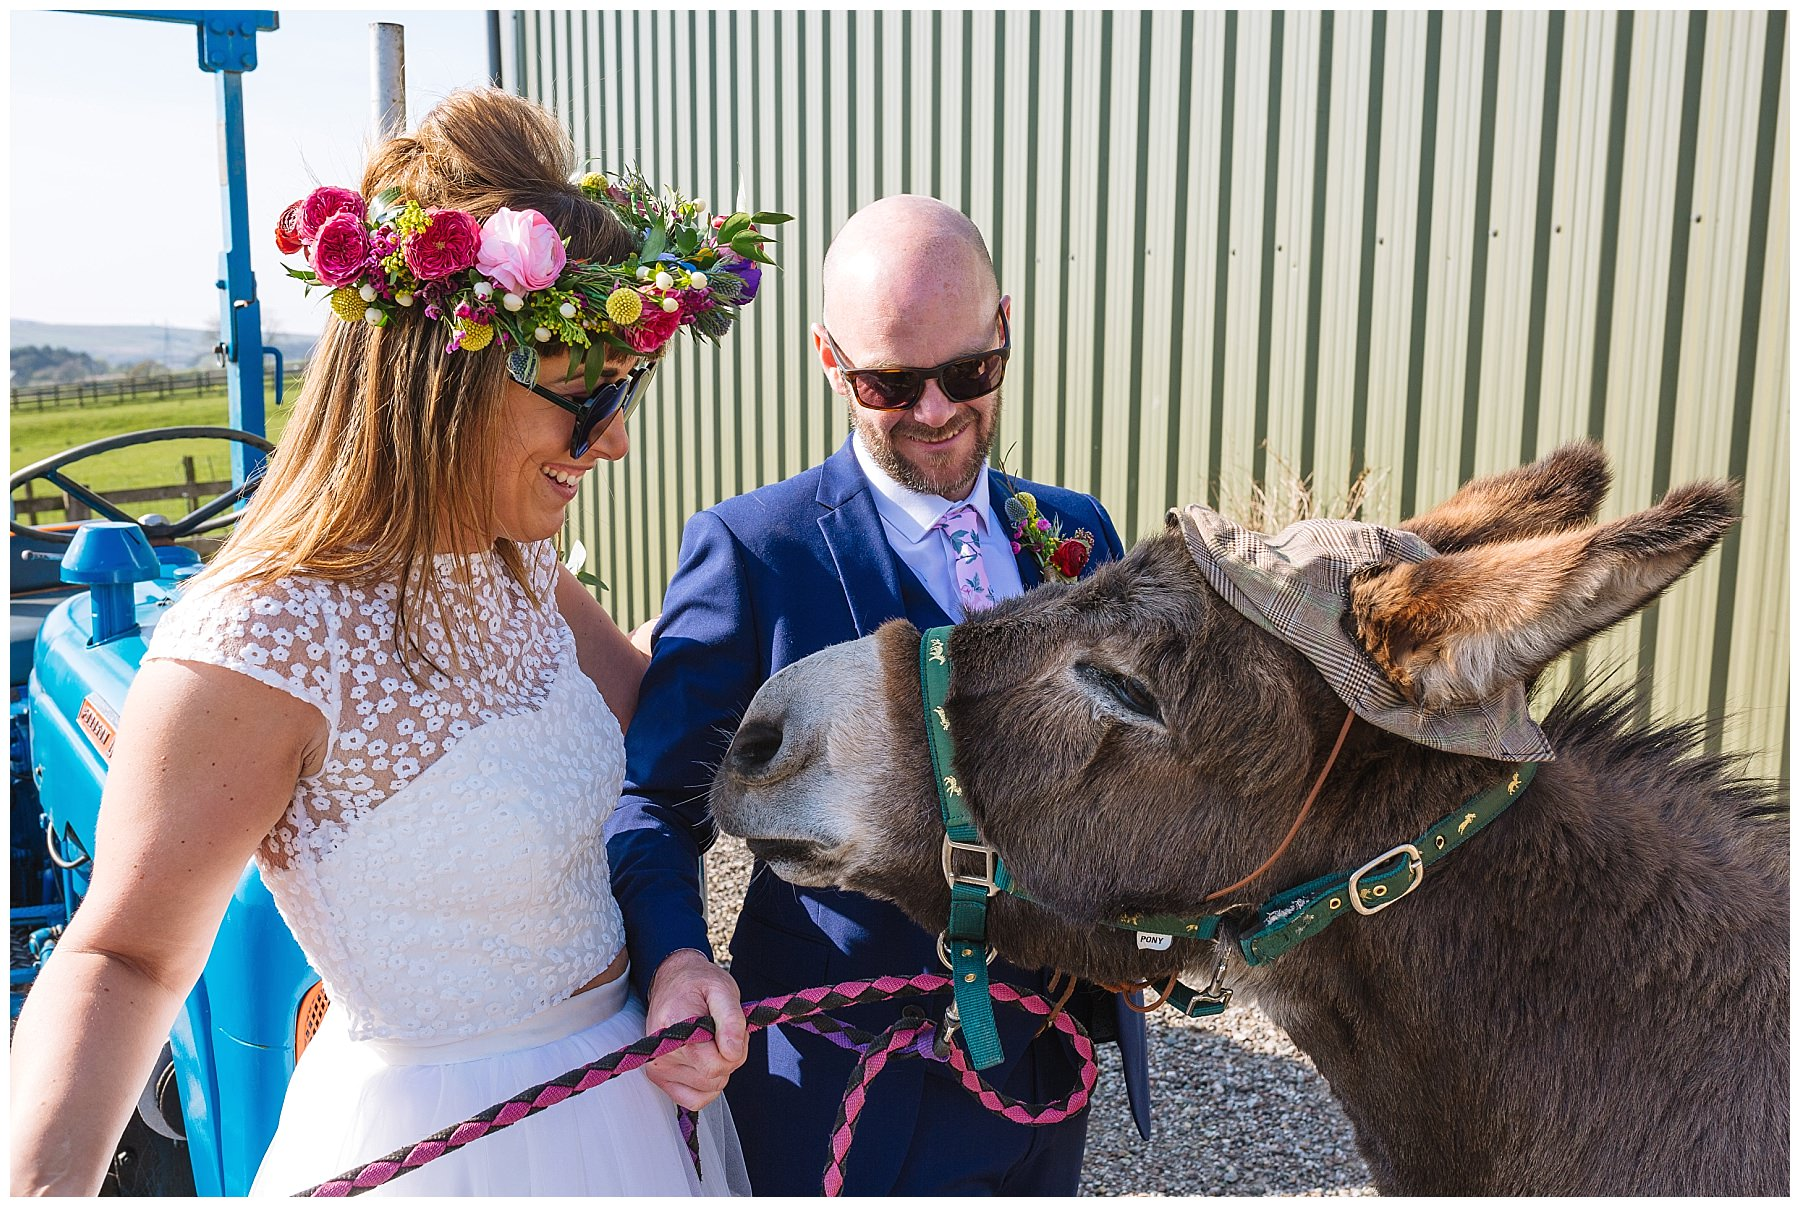 bride and groom and crakerjack the donkey at the wellbeing farm